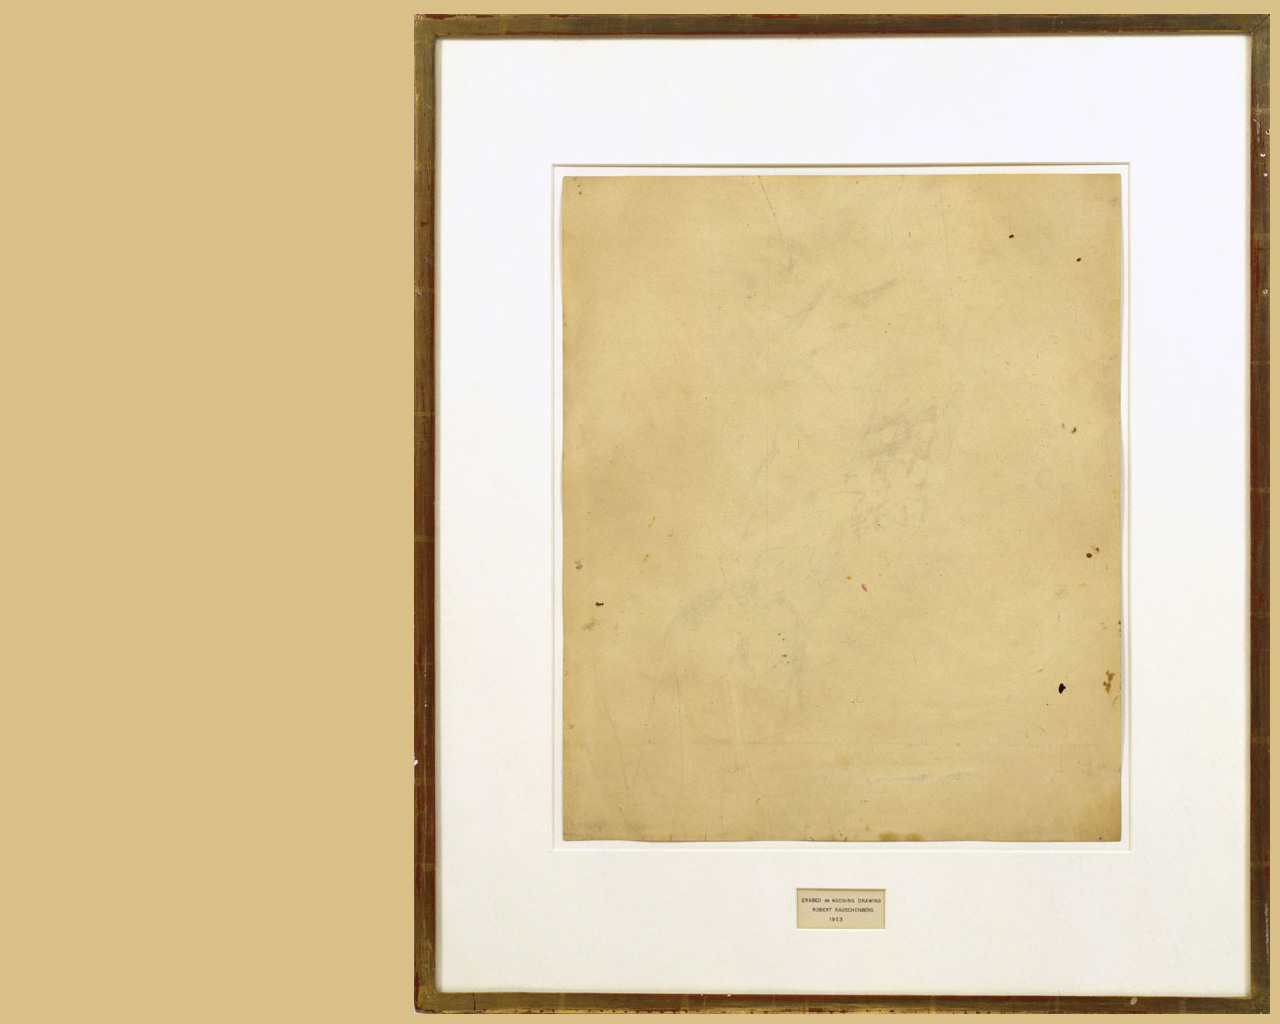 Роберт Раушенберг - Erased de Kooning Drawing